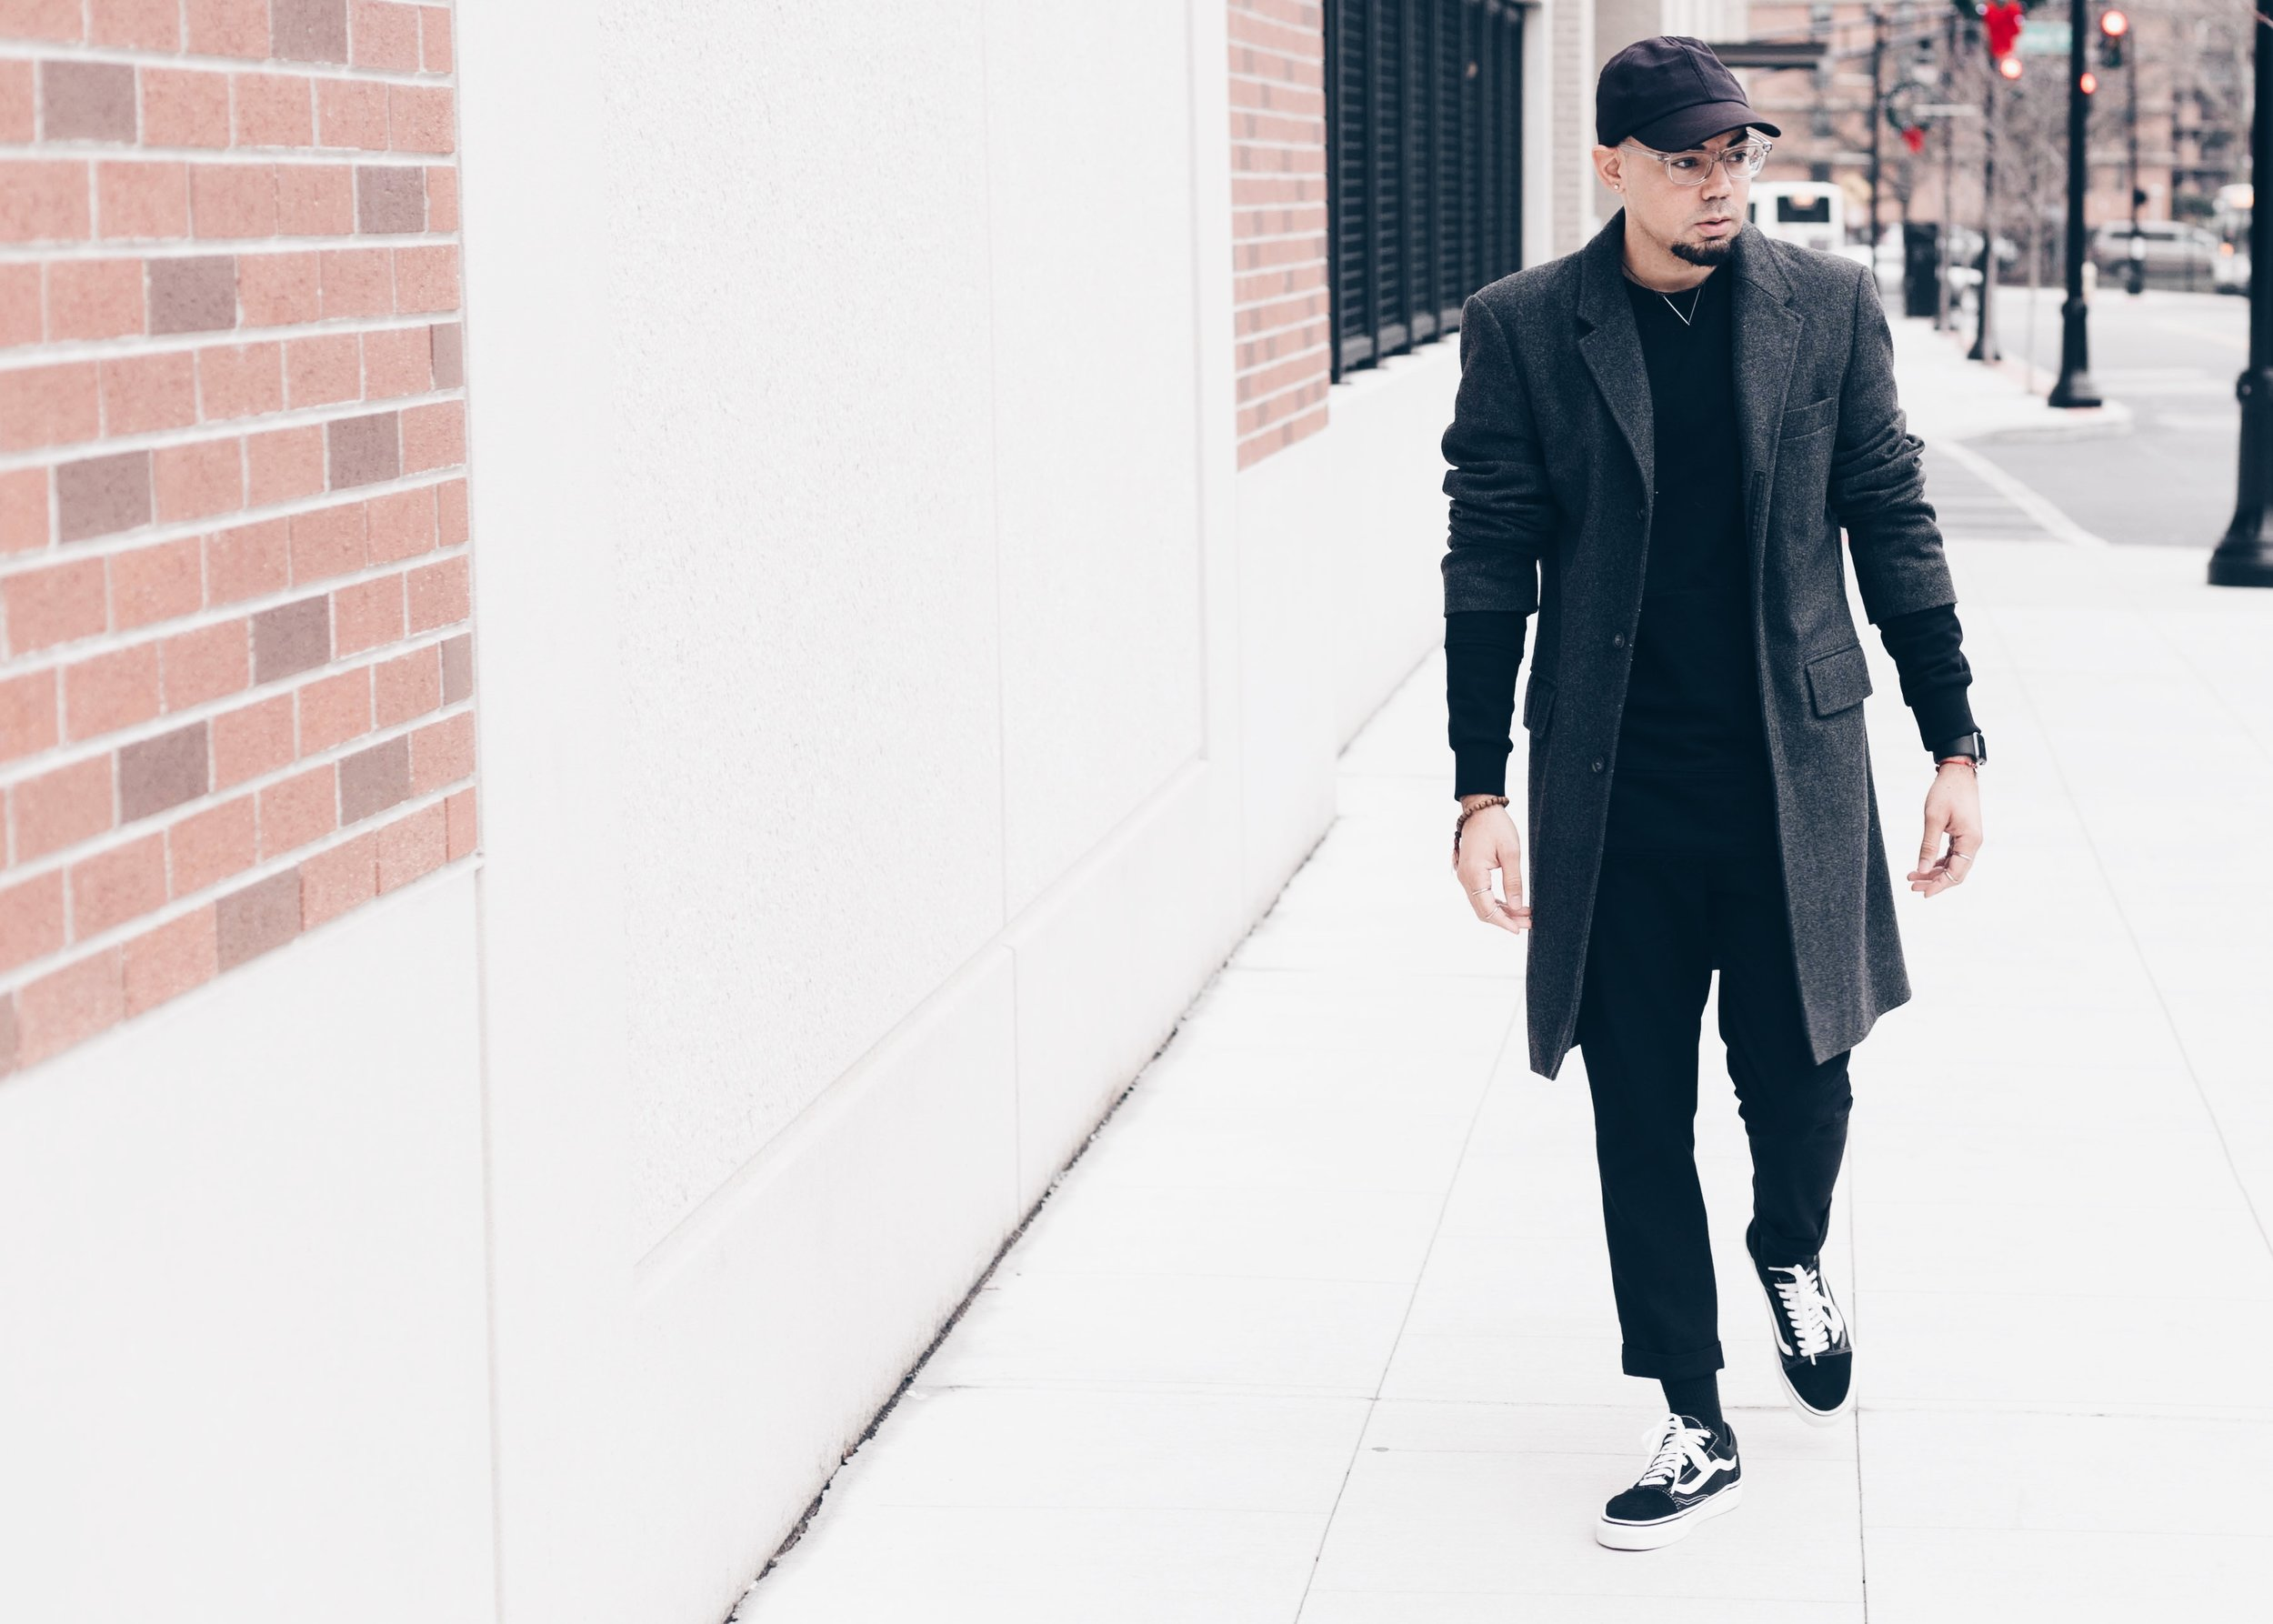 sam-c-perry-all-black-distressed-sweater-oversized-overcoat-street-walk.jpg